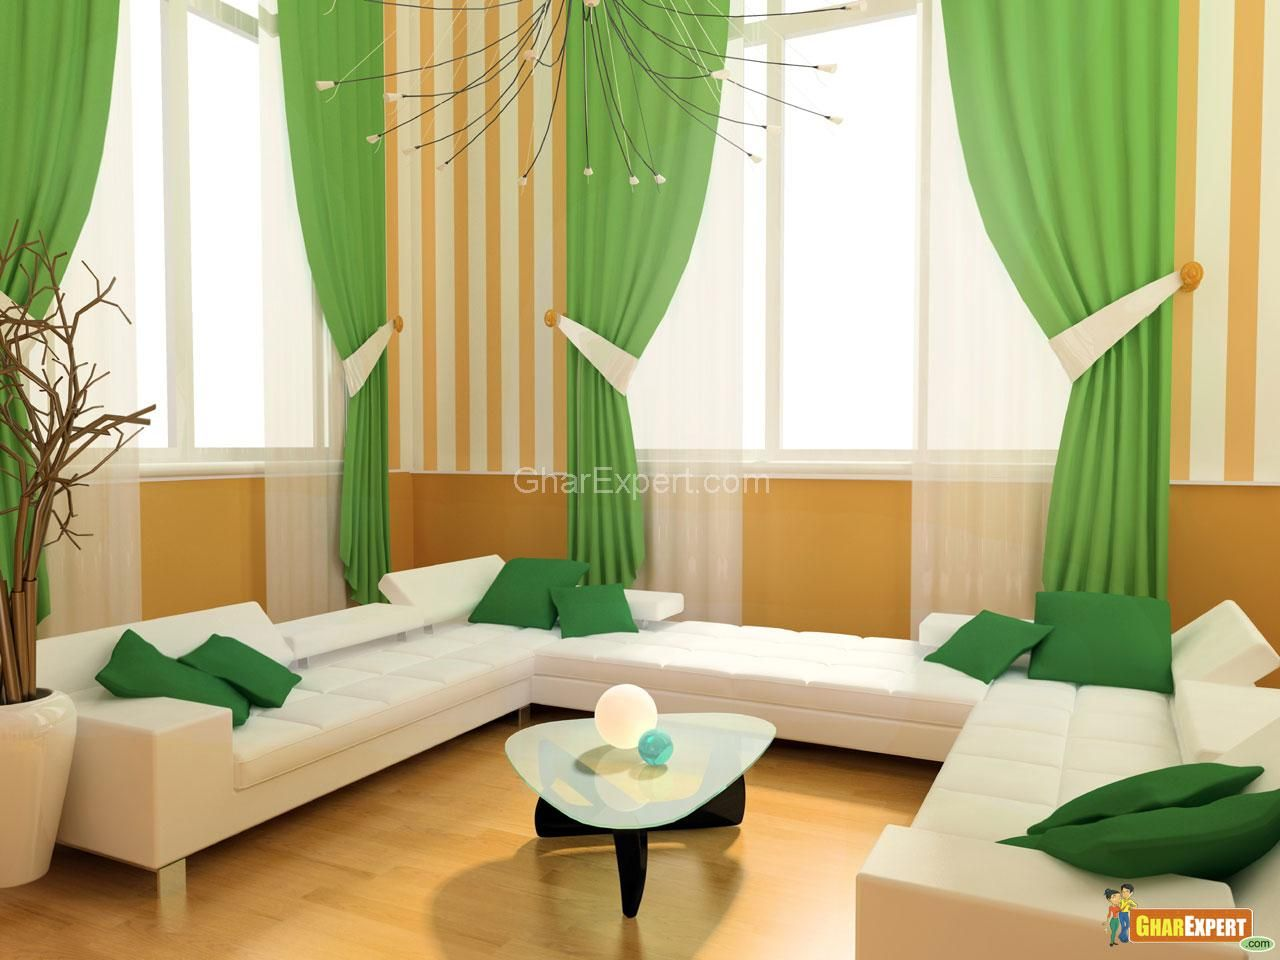 Curtains Design For Living Room Impressive Greencurtaindesignsforlivingroomwindow  Curtains For Living Inspiration Design